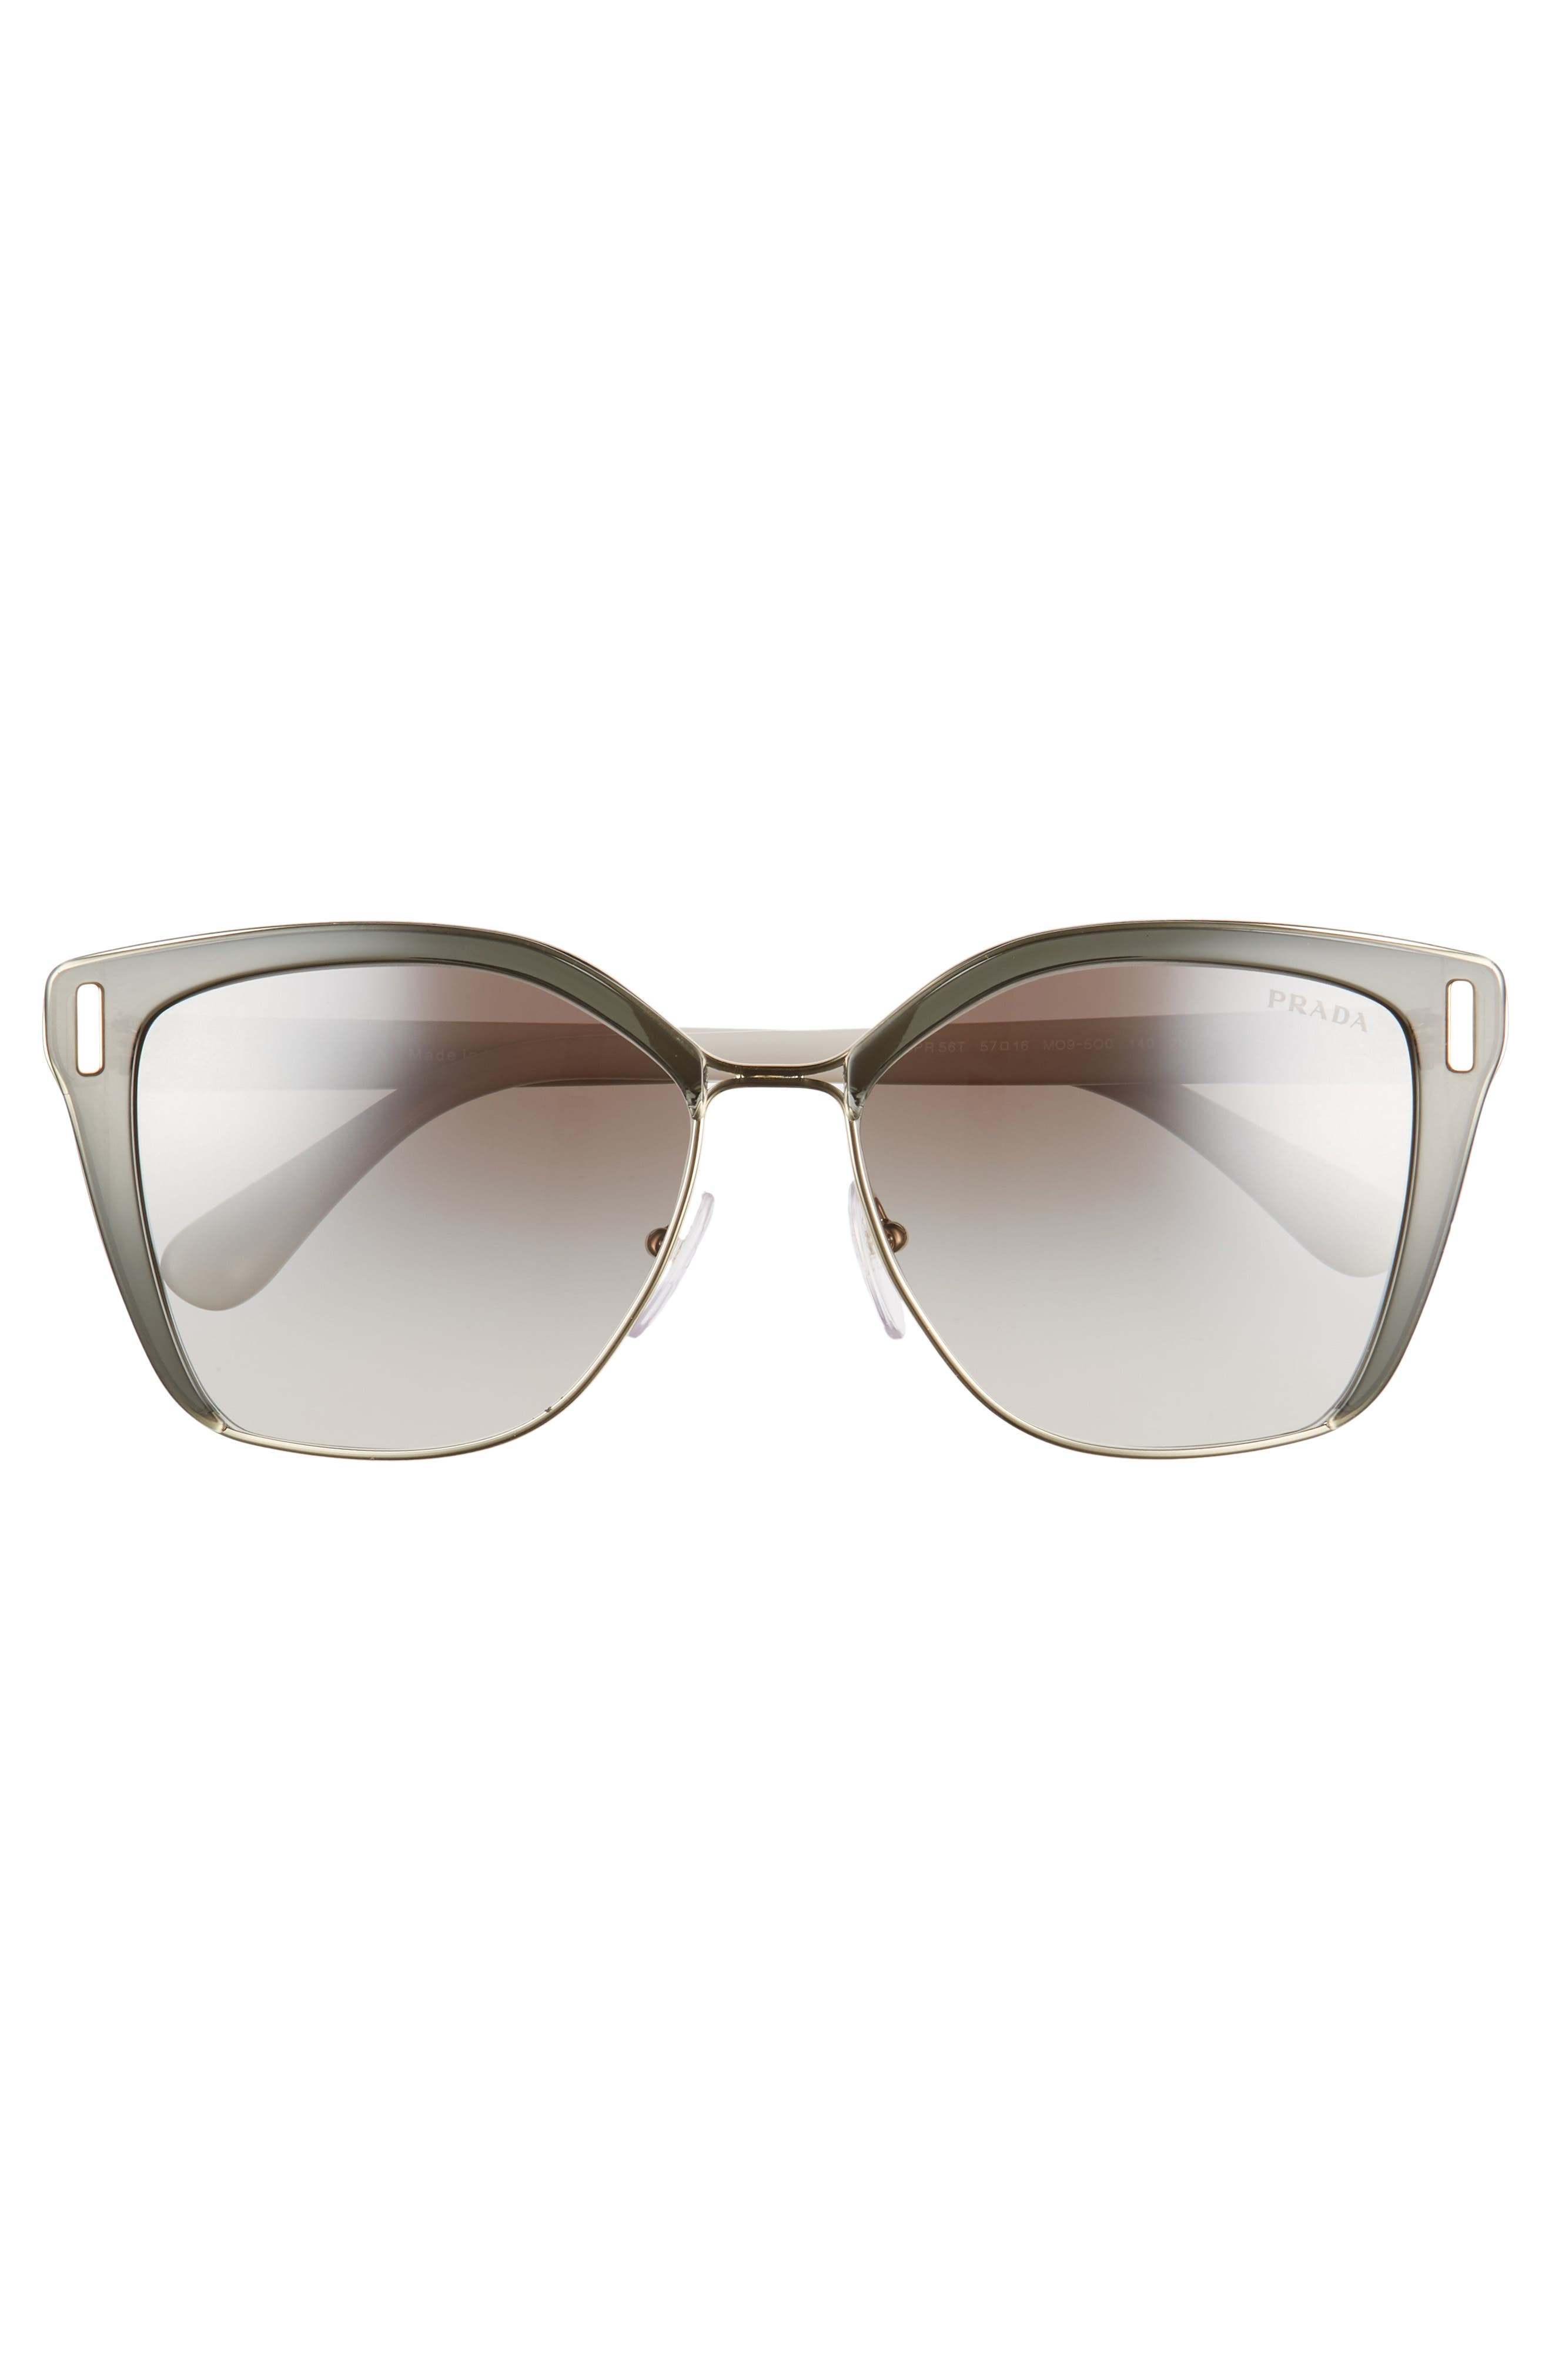 54mm Gradient Geometric Sunglasses,                             Alternate thumbnail 3, color,                             Grey/ Gold Gradient Mirror